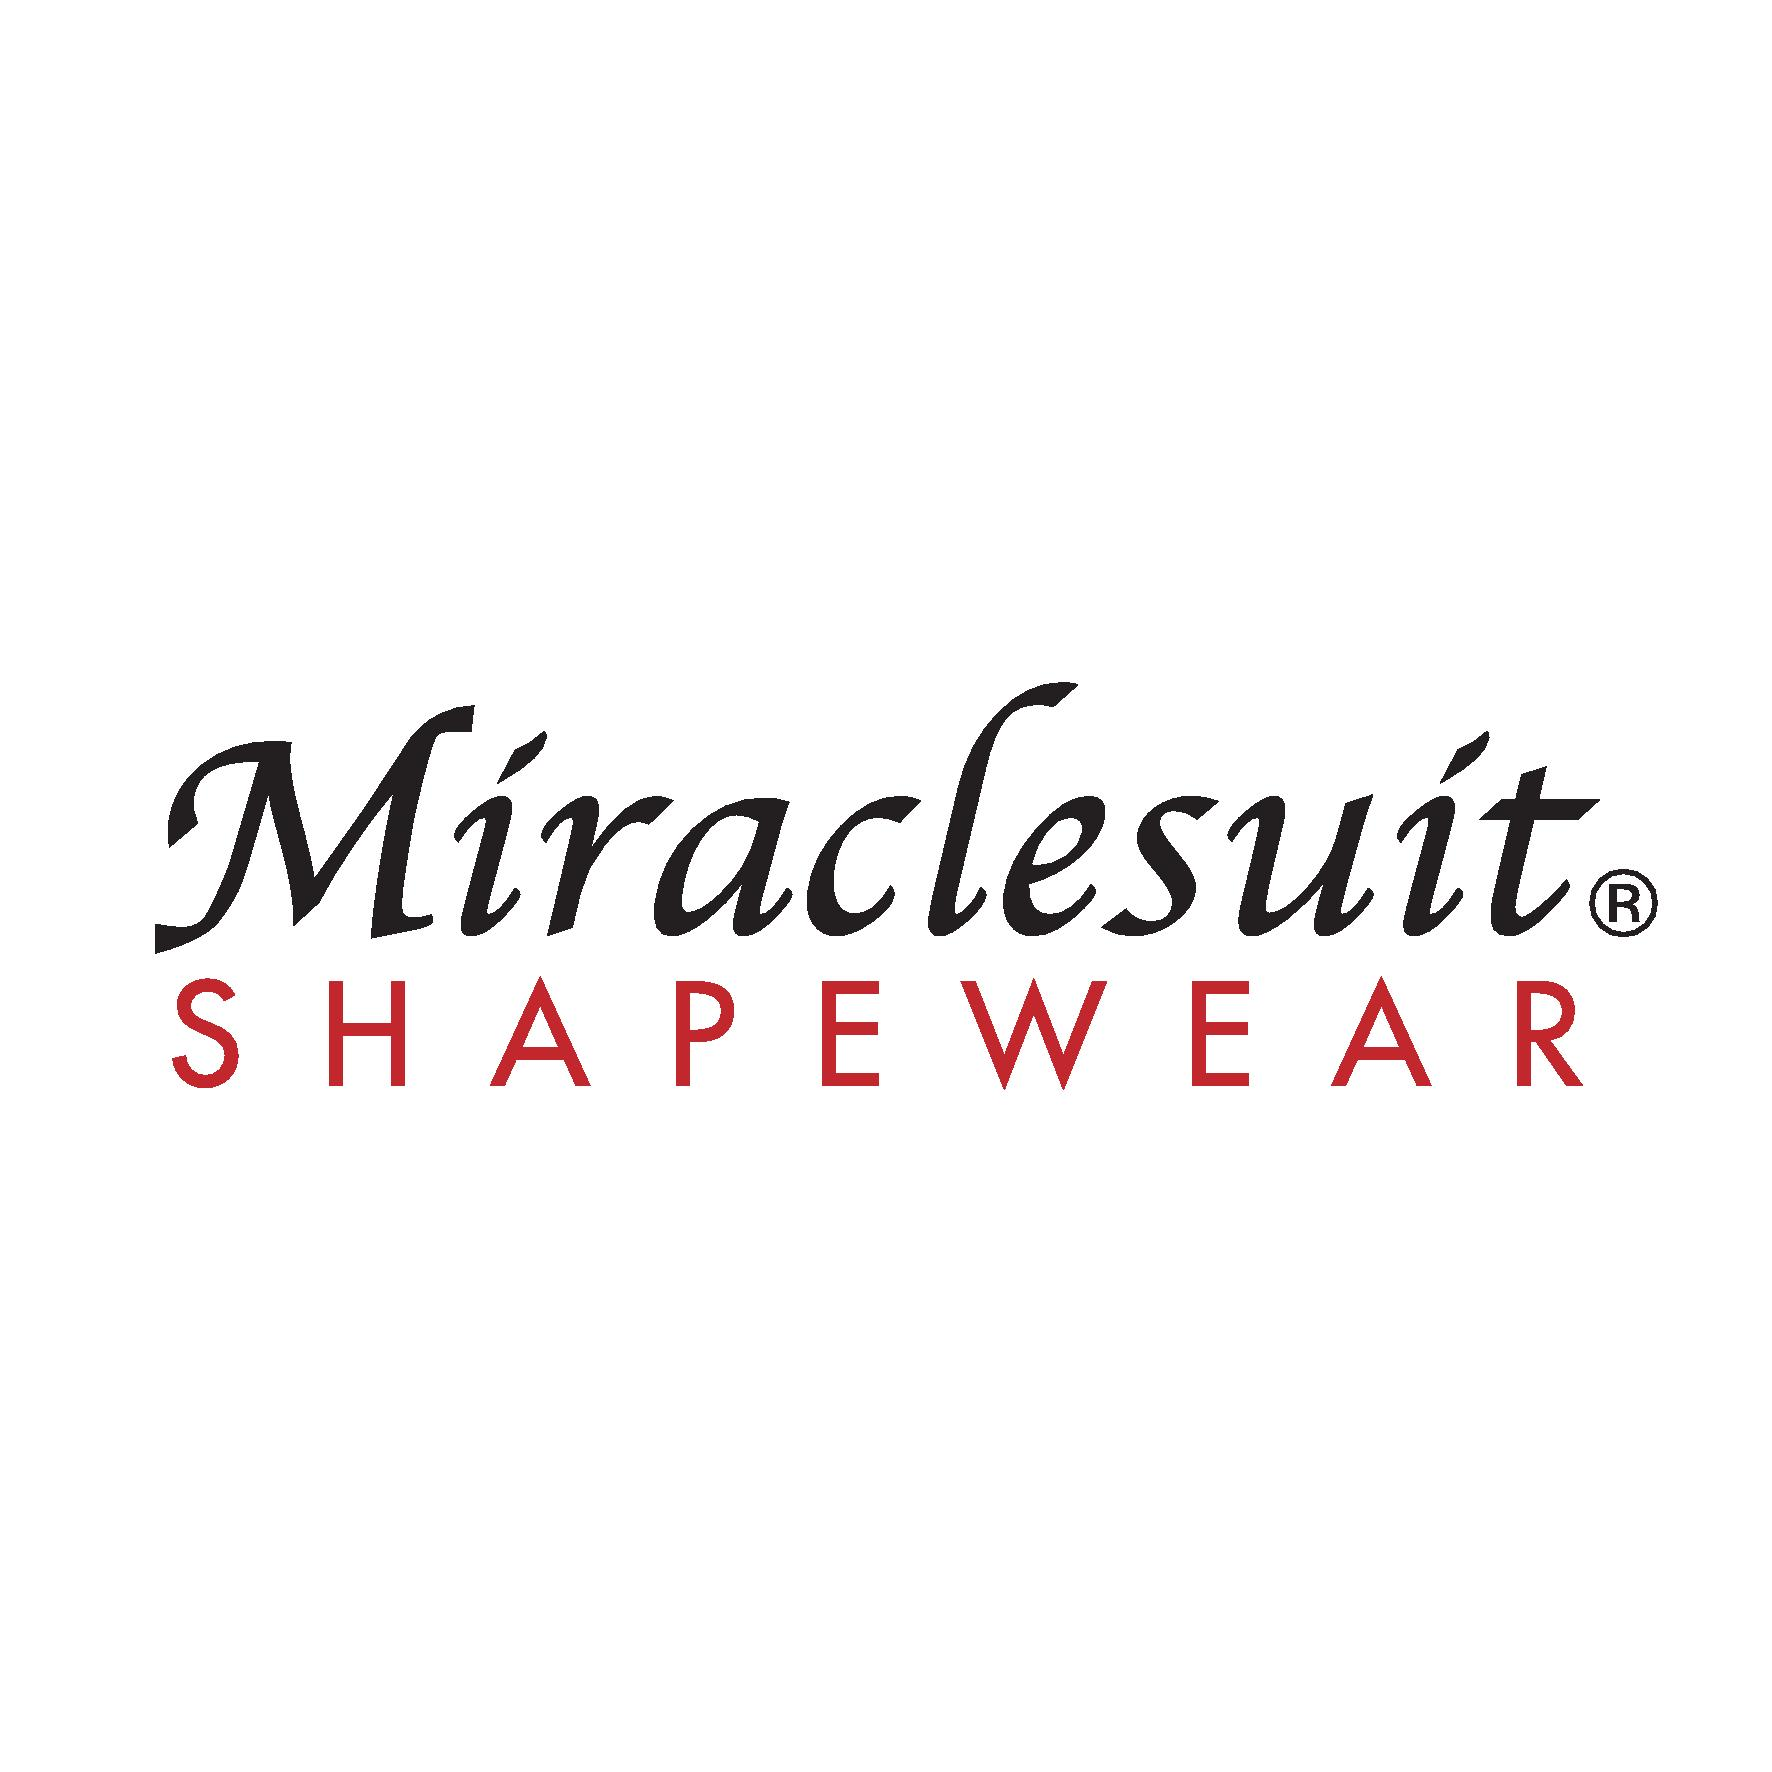 Miraclesuit (shapewear)